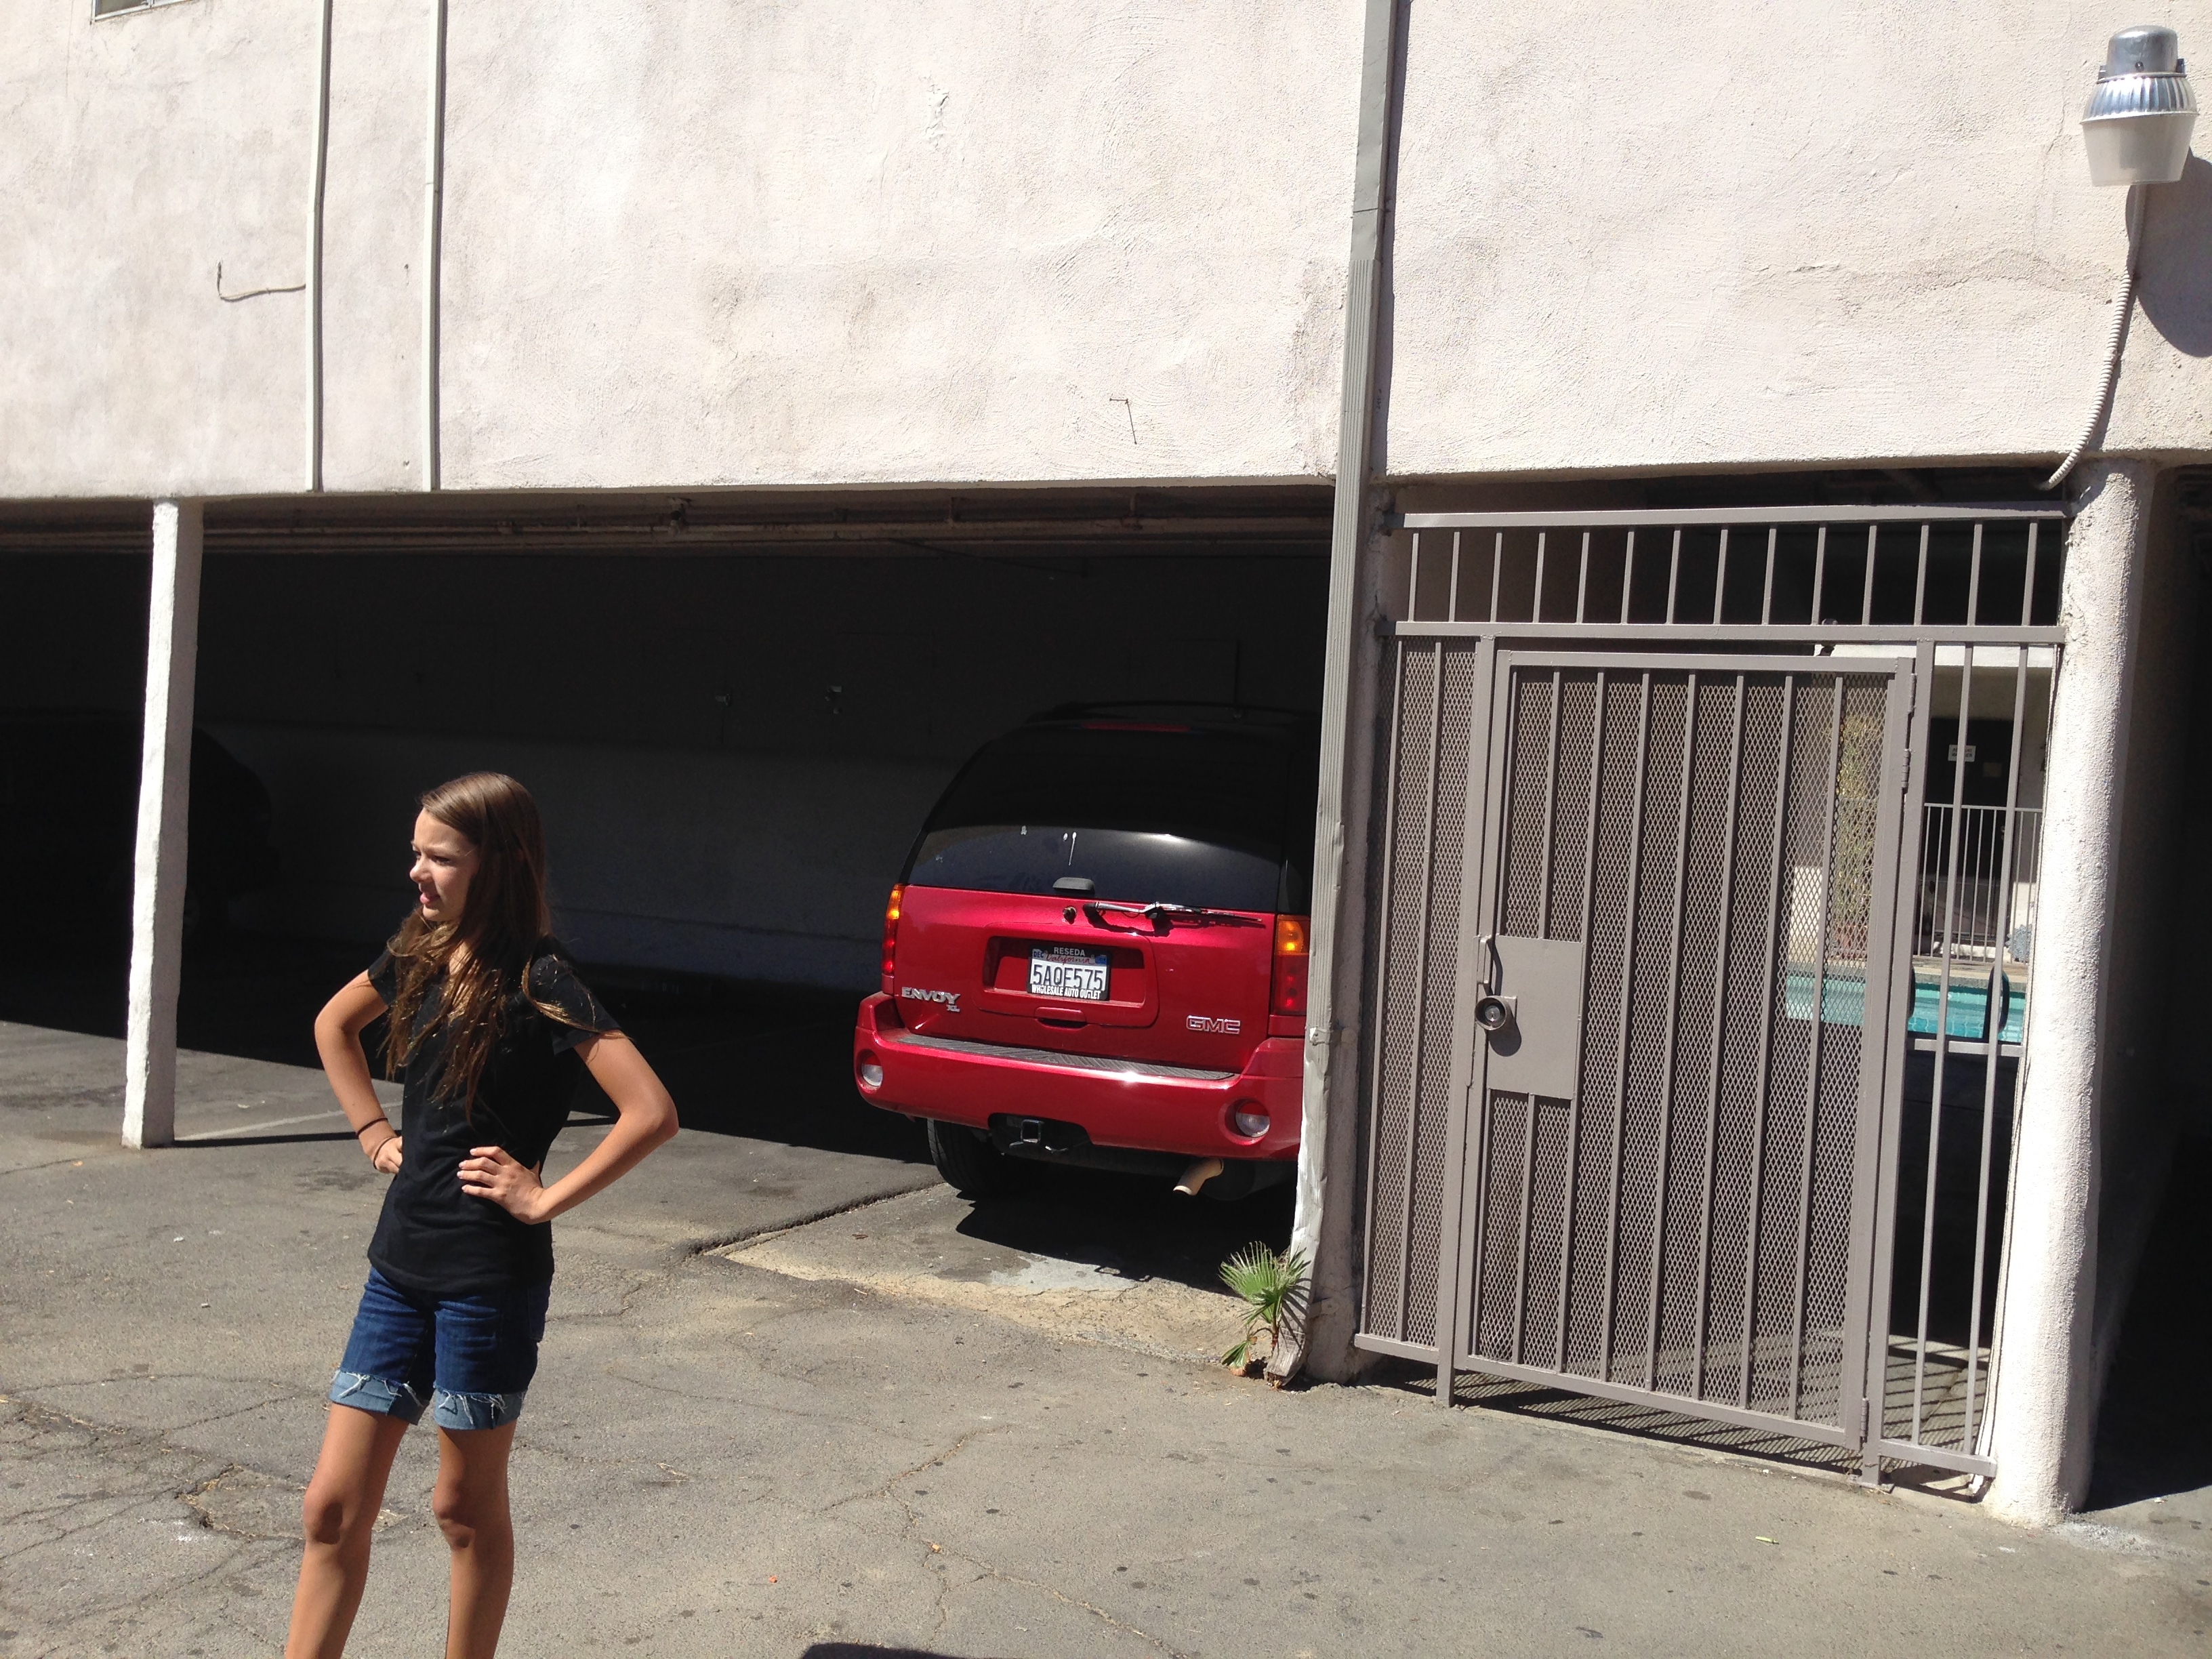 Apartment Building Karate Kid the karate kid (1984) filming locations, part 1 | from wellywood